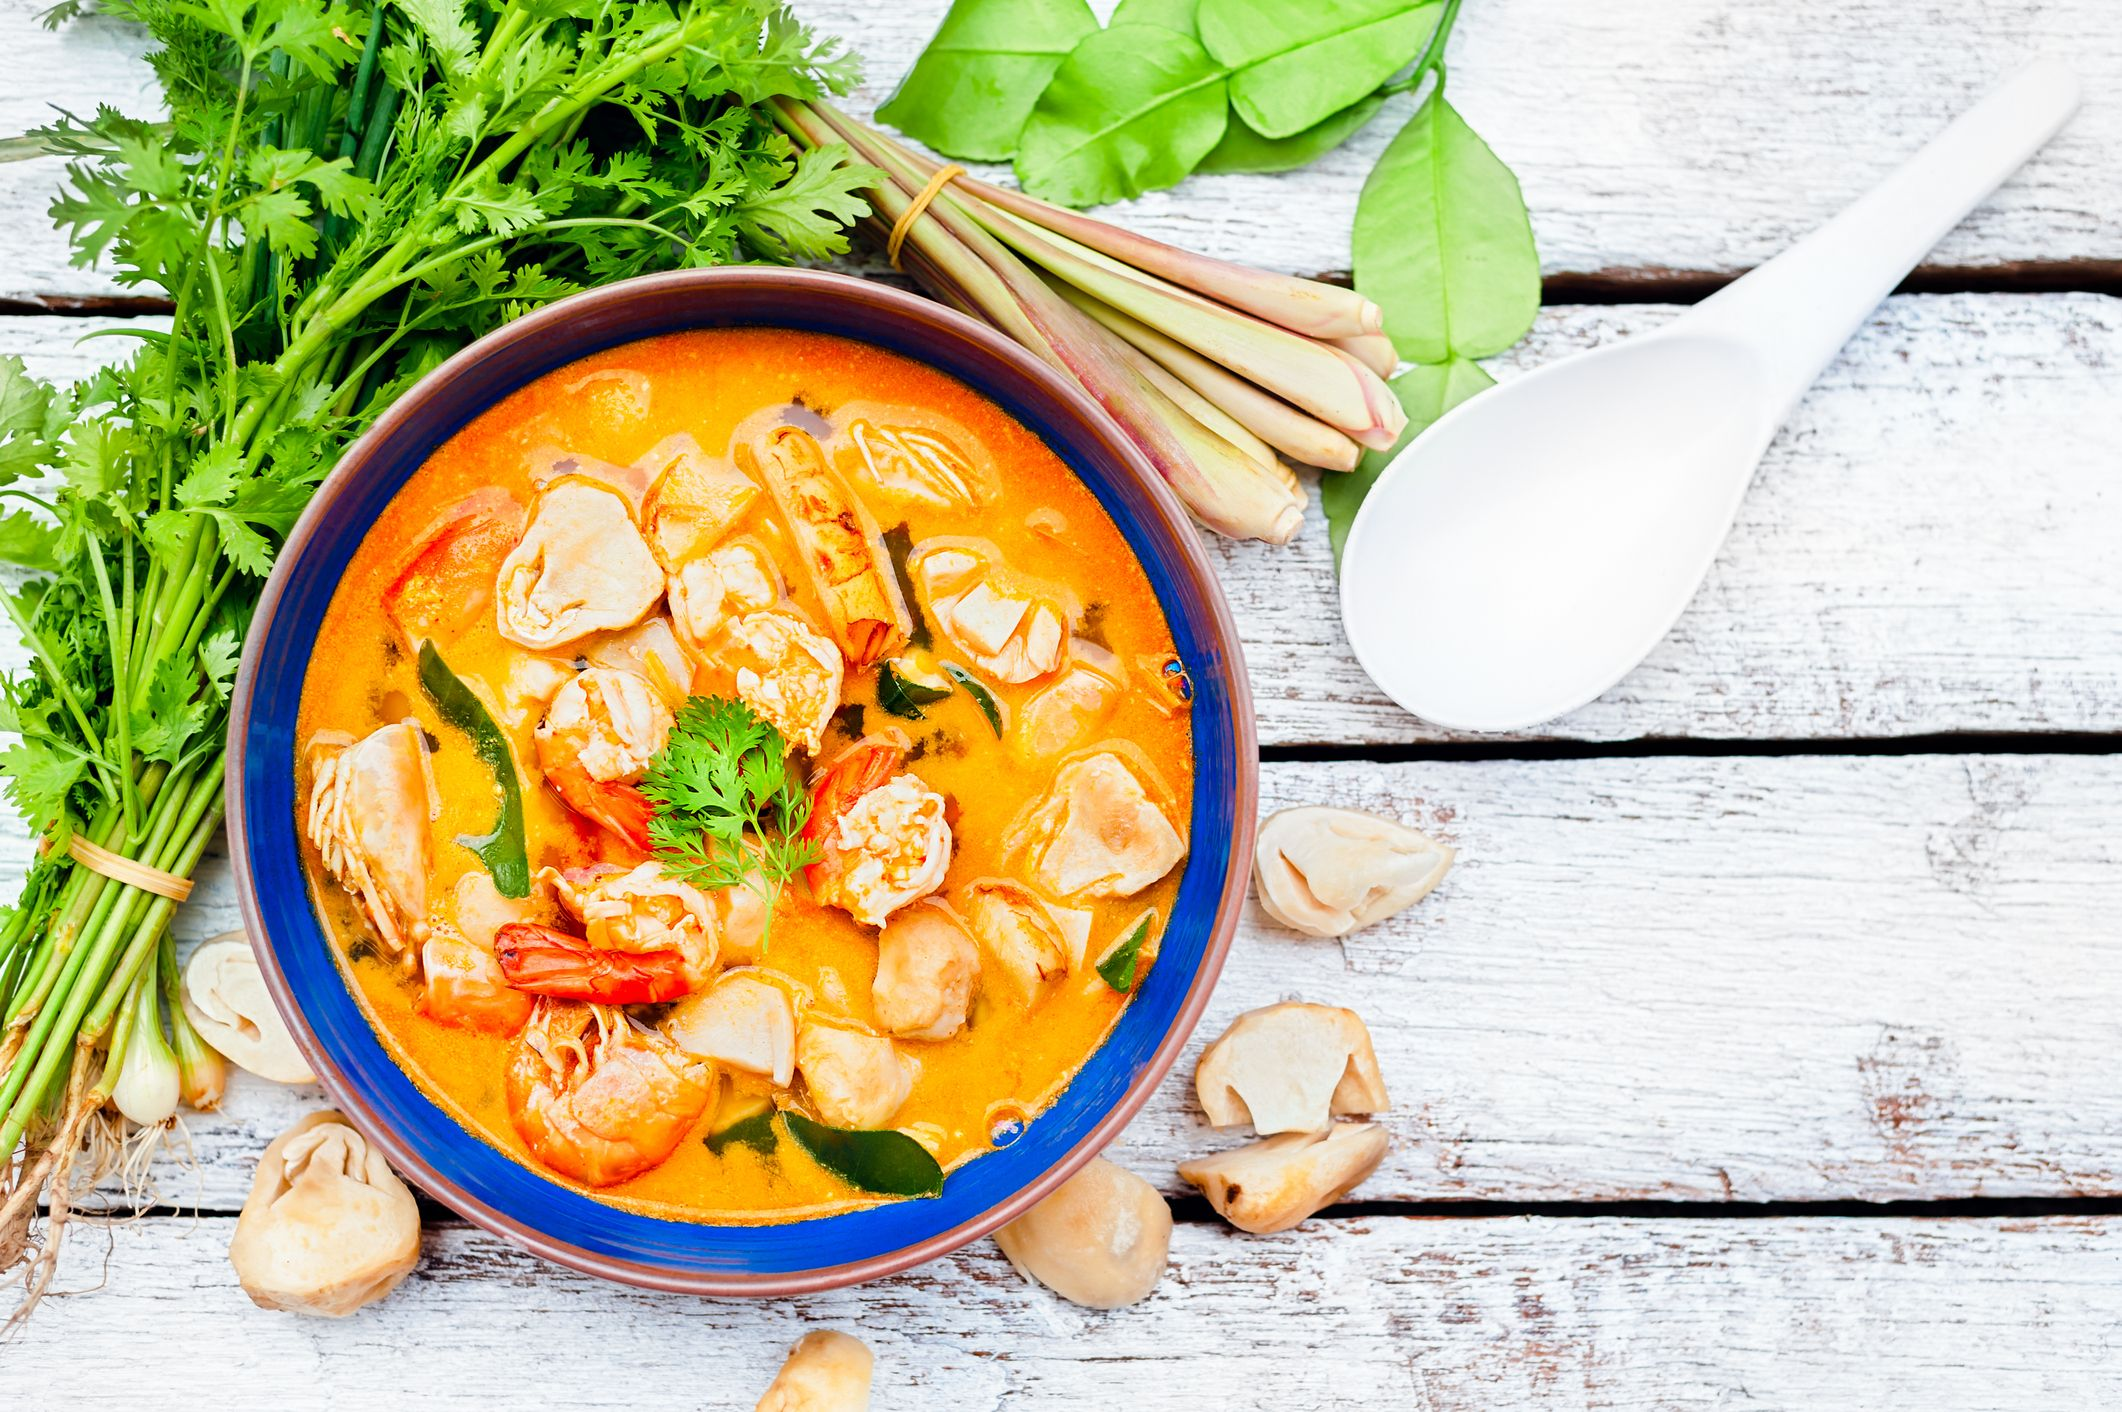 The 10 Healthiest Thai Food Orders, According To A Nutritionist